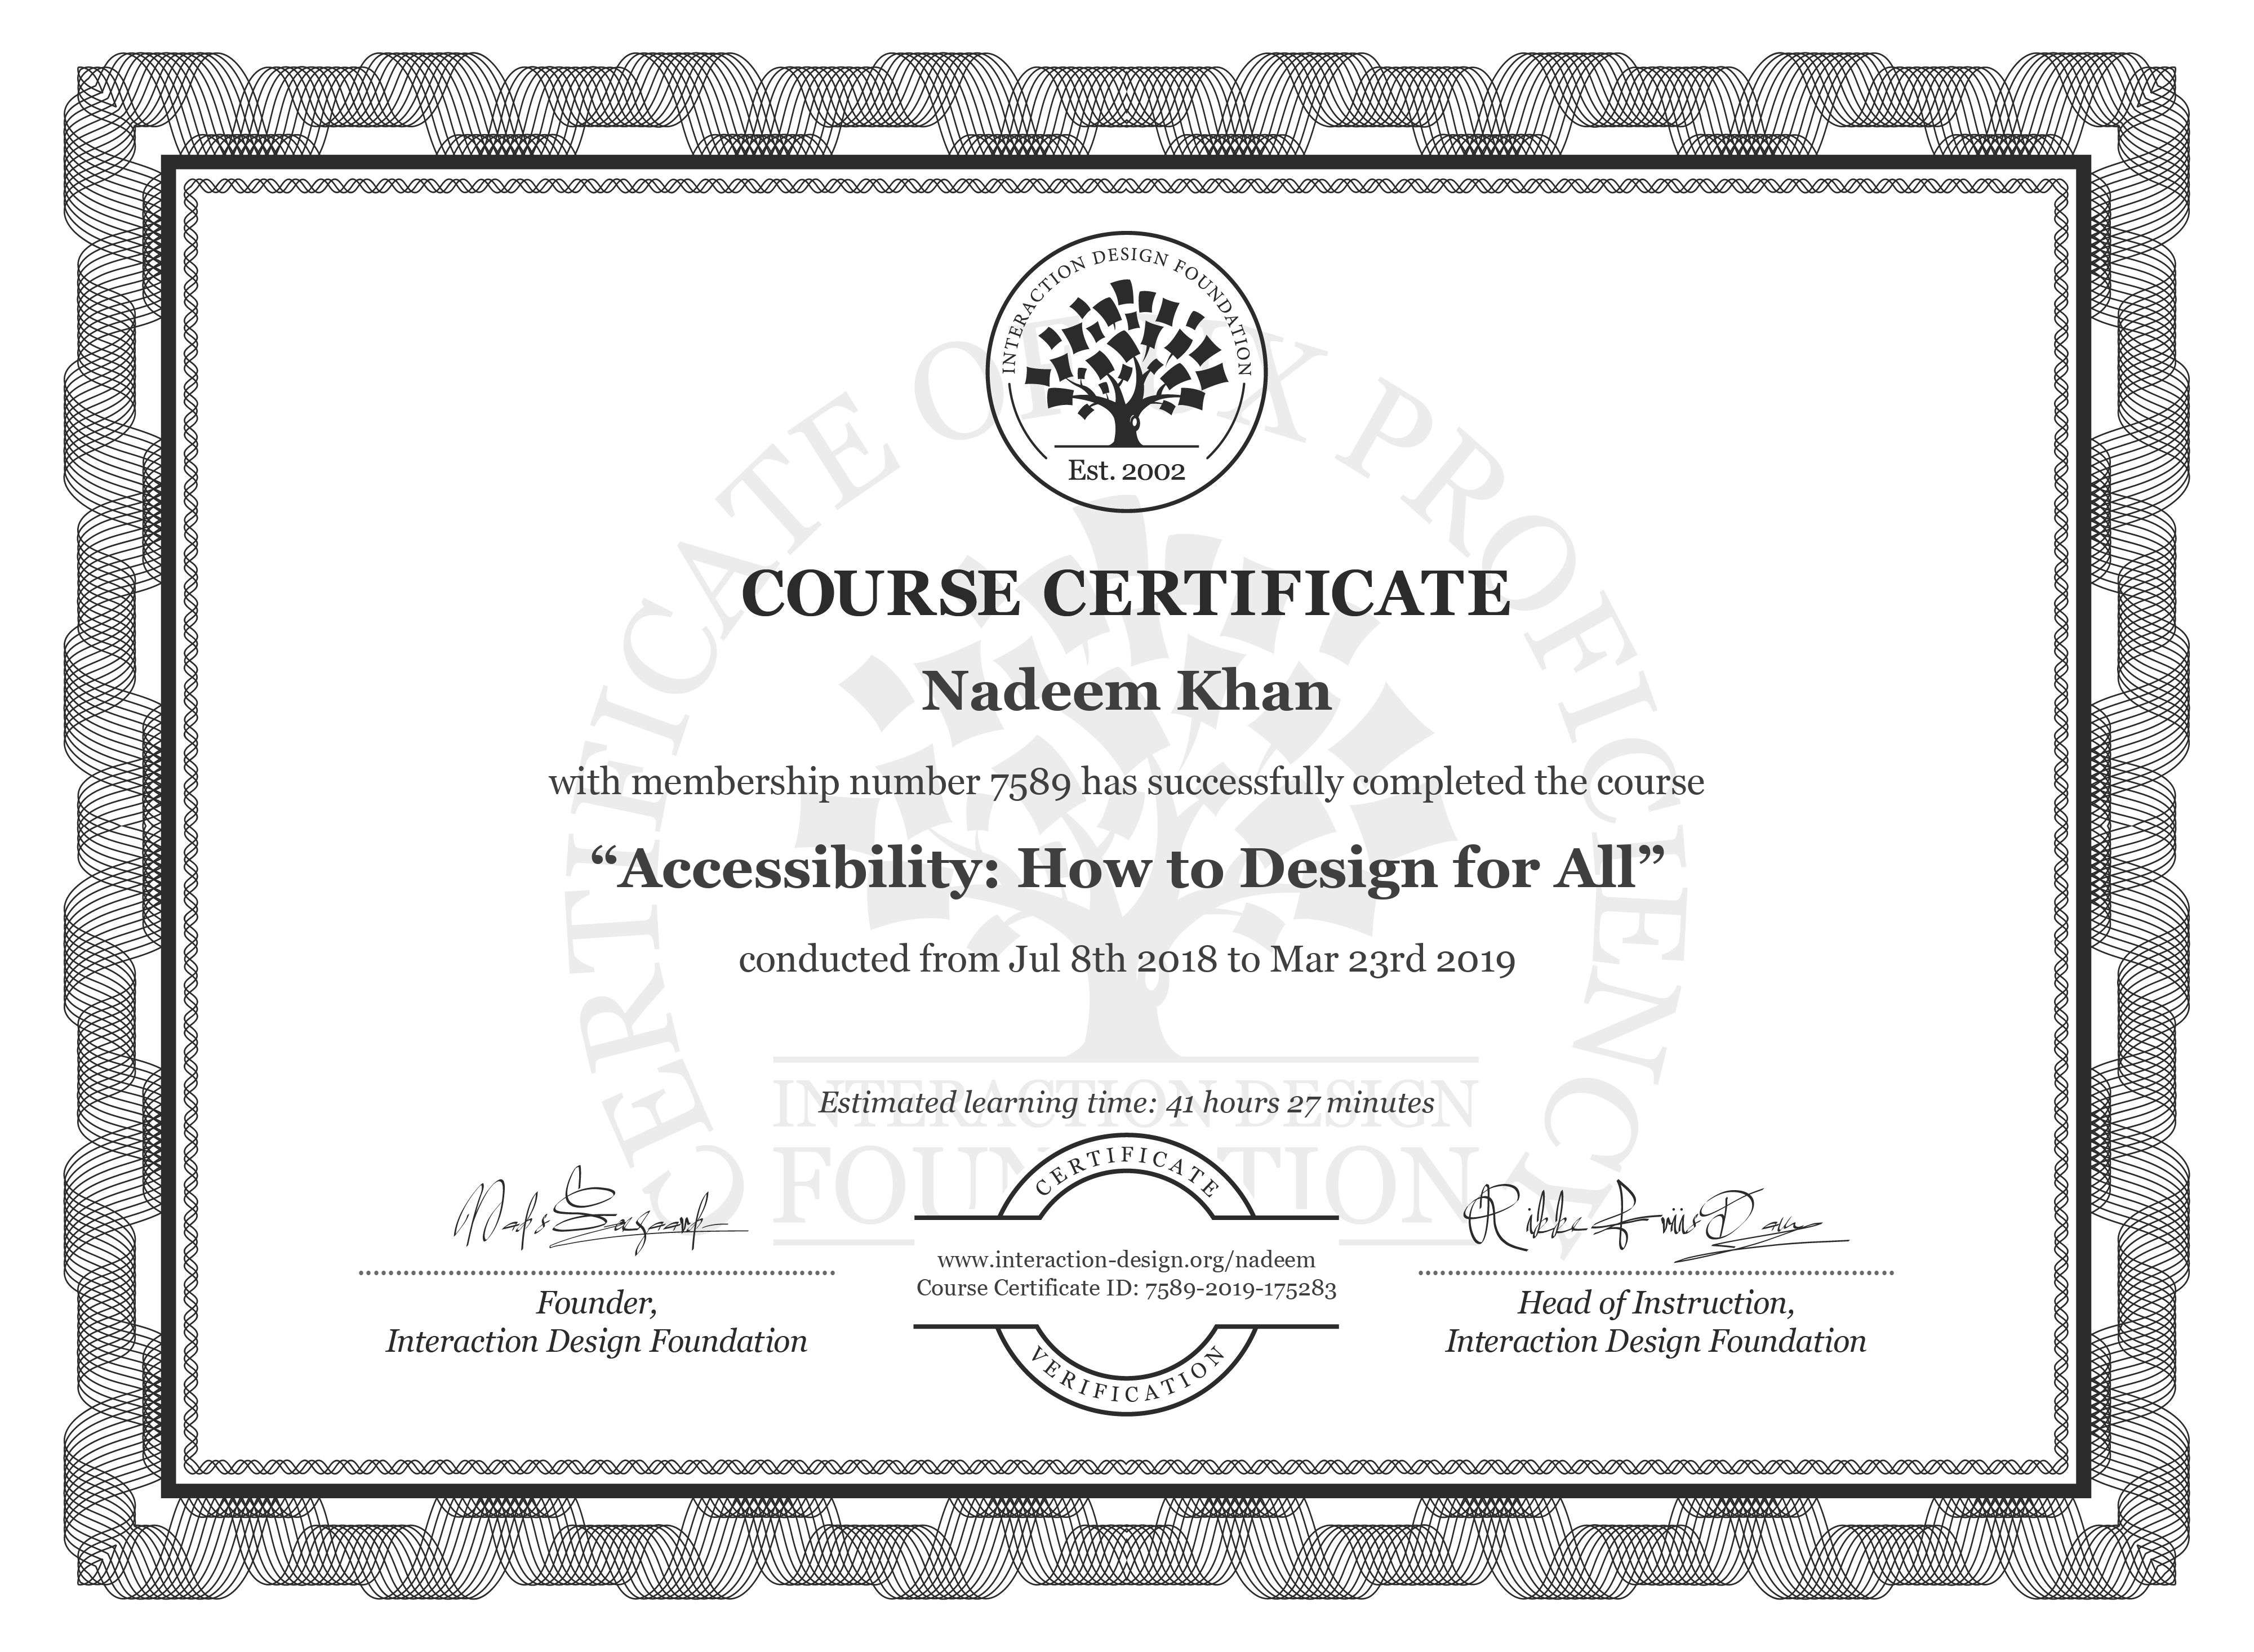 Nadeem Khan: Course Certificate - Accessibility: How to Design for All